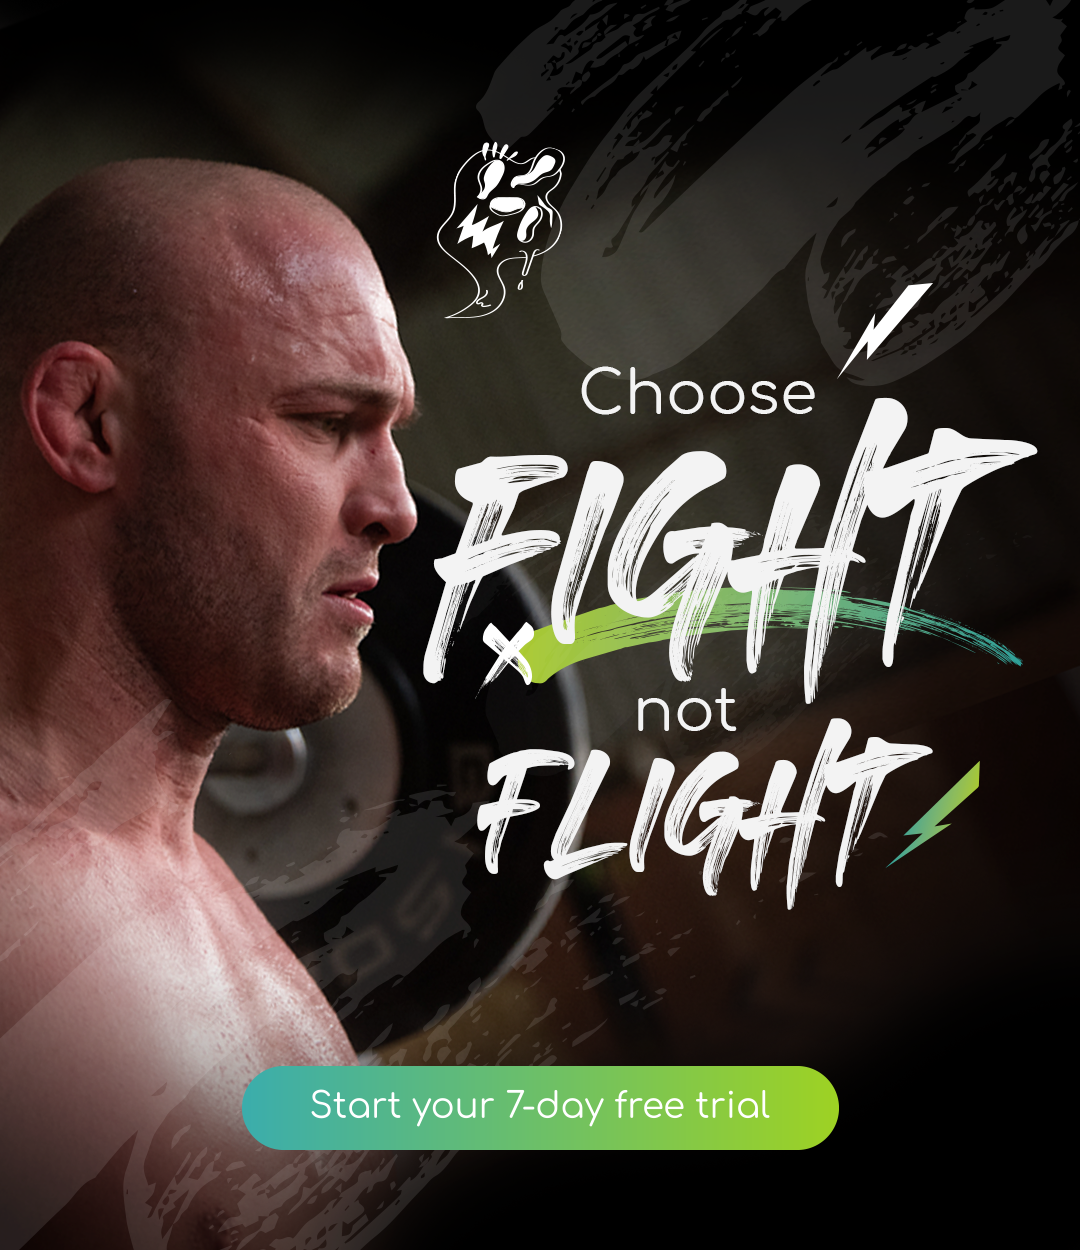 Choose Fight mobile banner - 7-day trial CTA